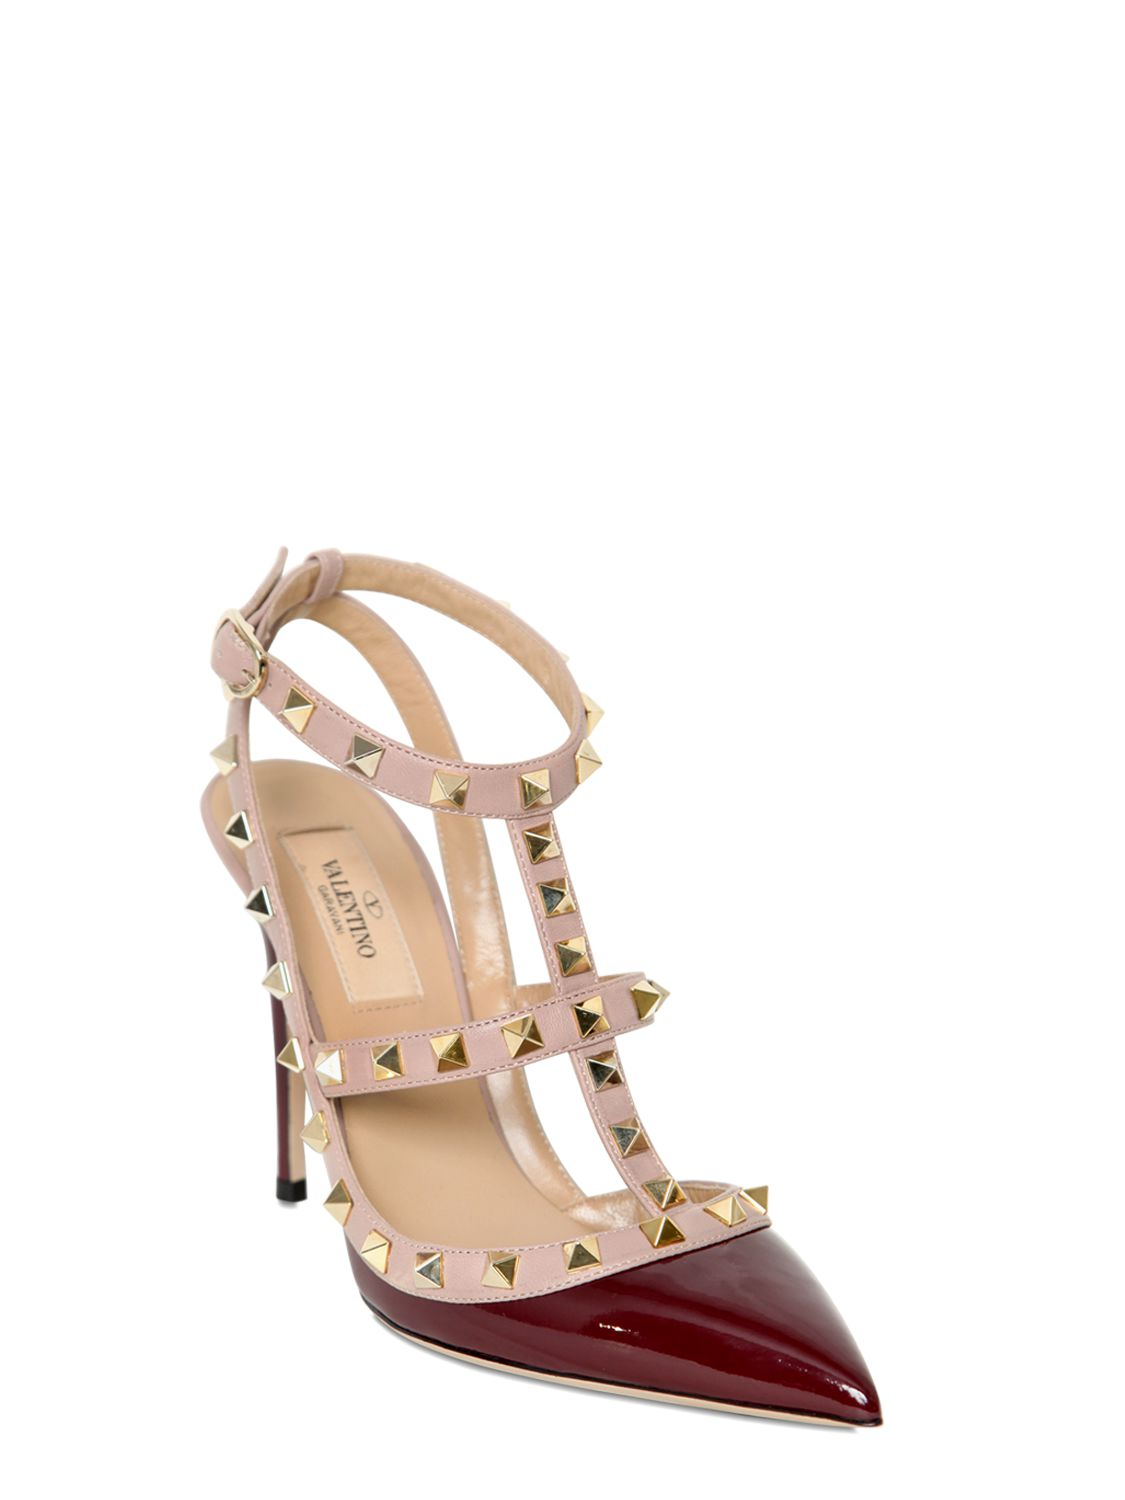 Valentino 100mm Rock Stud Patent Leather Pumps In Red Lyst